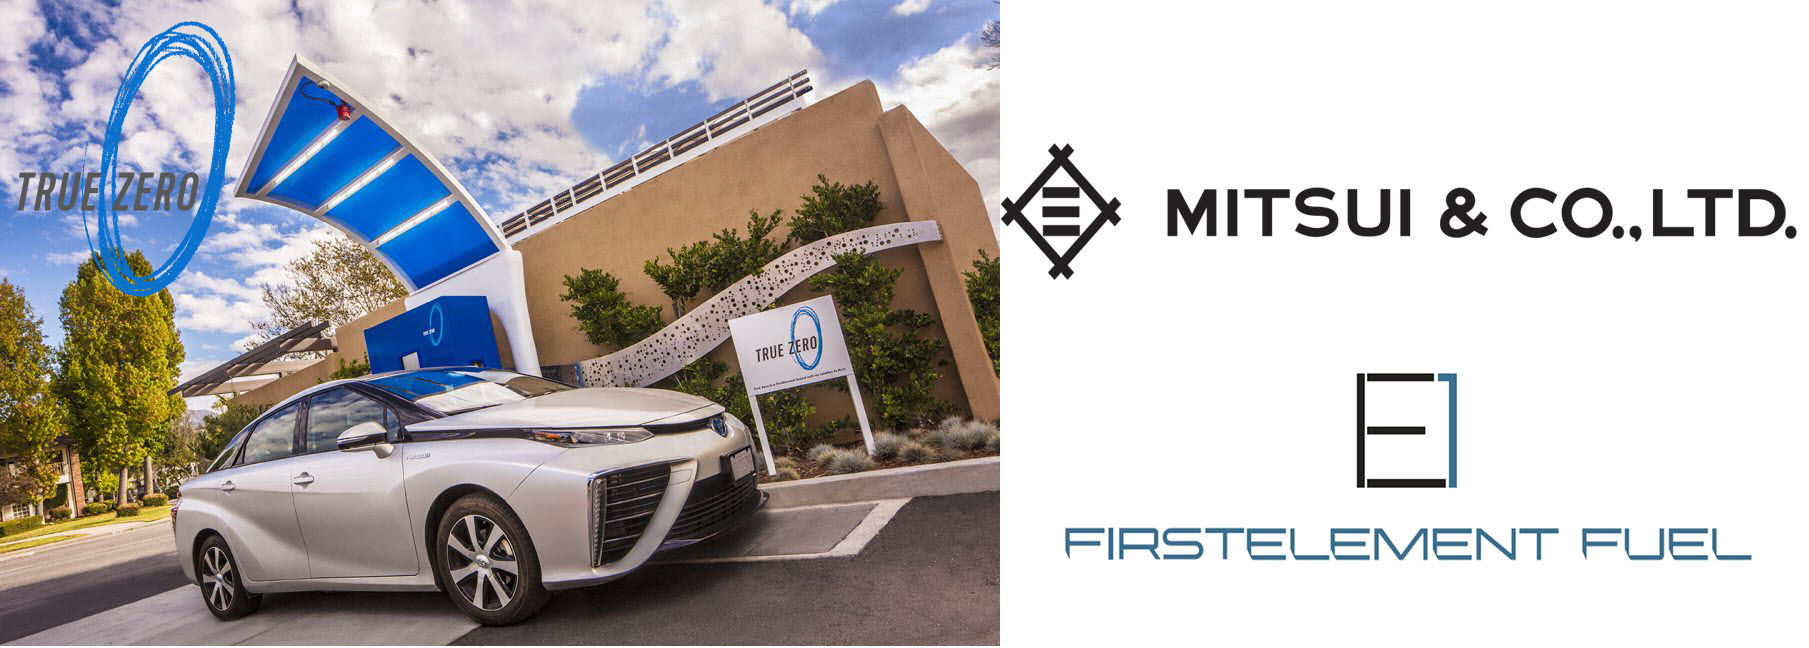 Japan's Mitsui Begins Business Collaboration with Hydrogen Station Operator in California - FuelCellsWorks